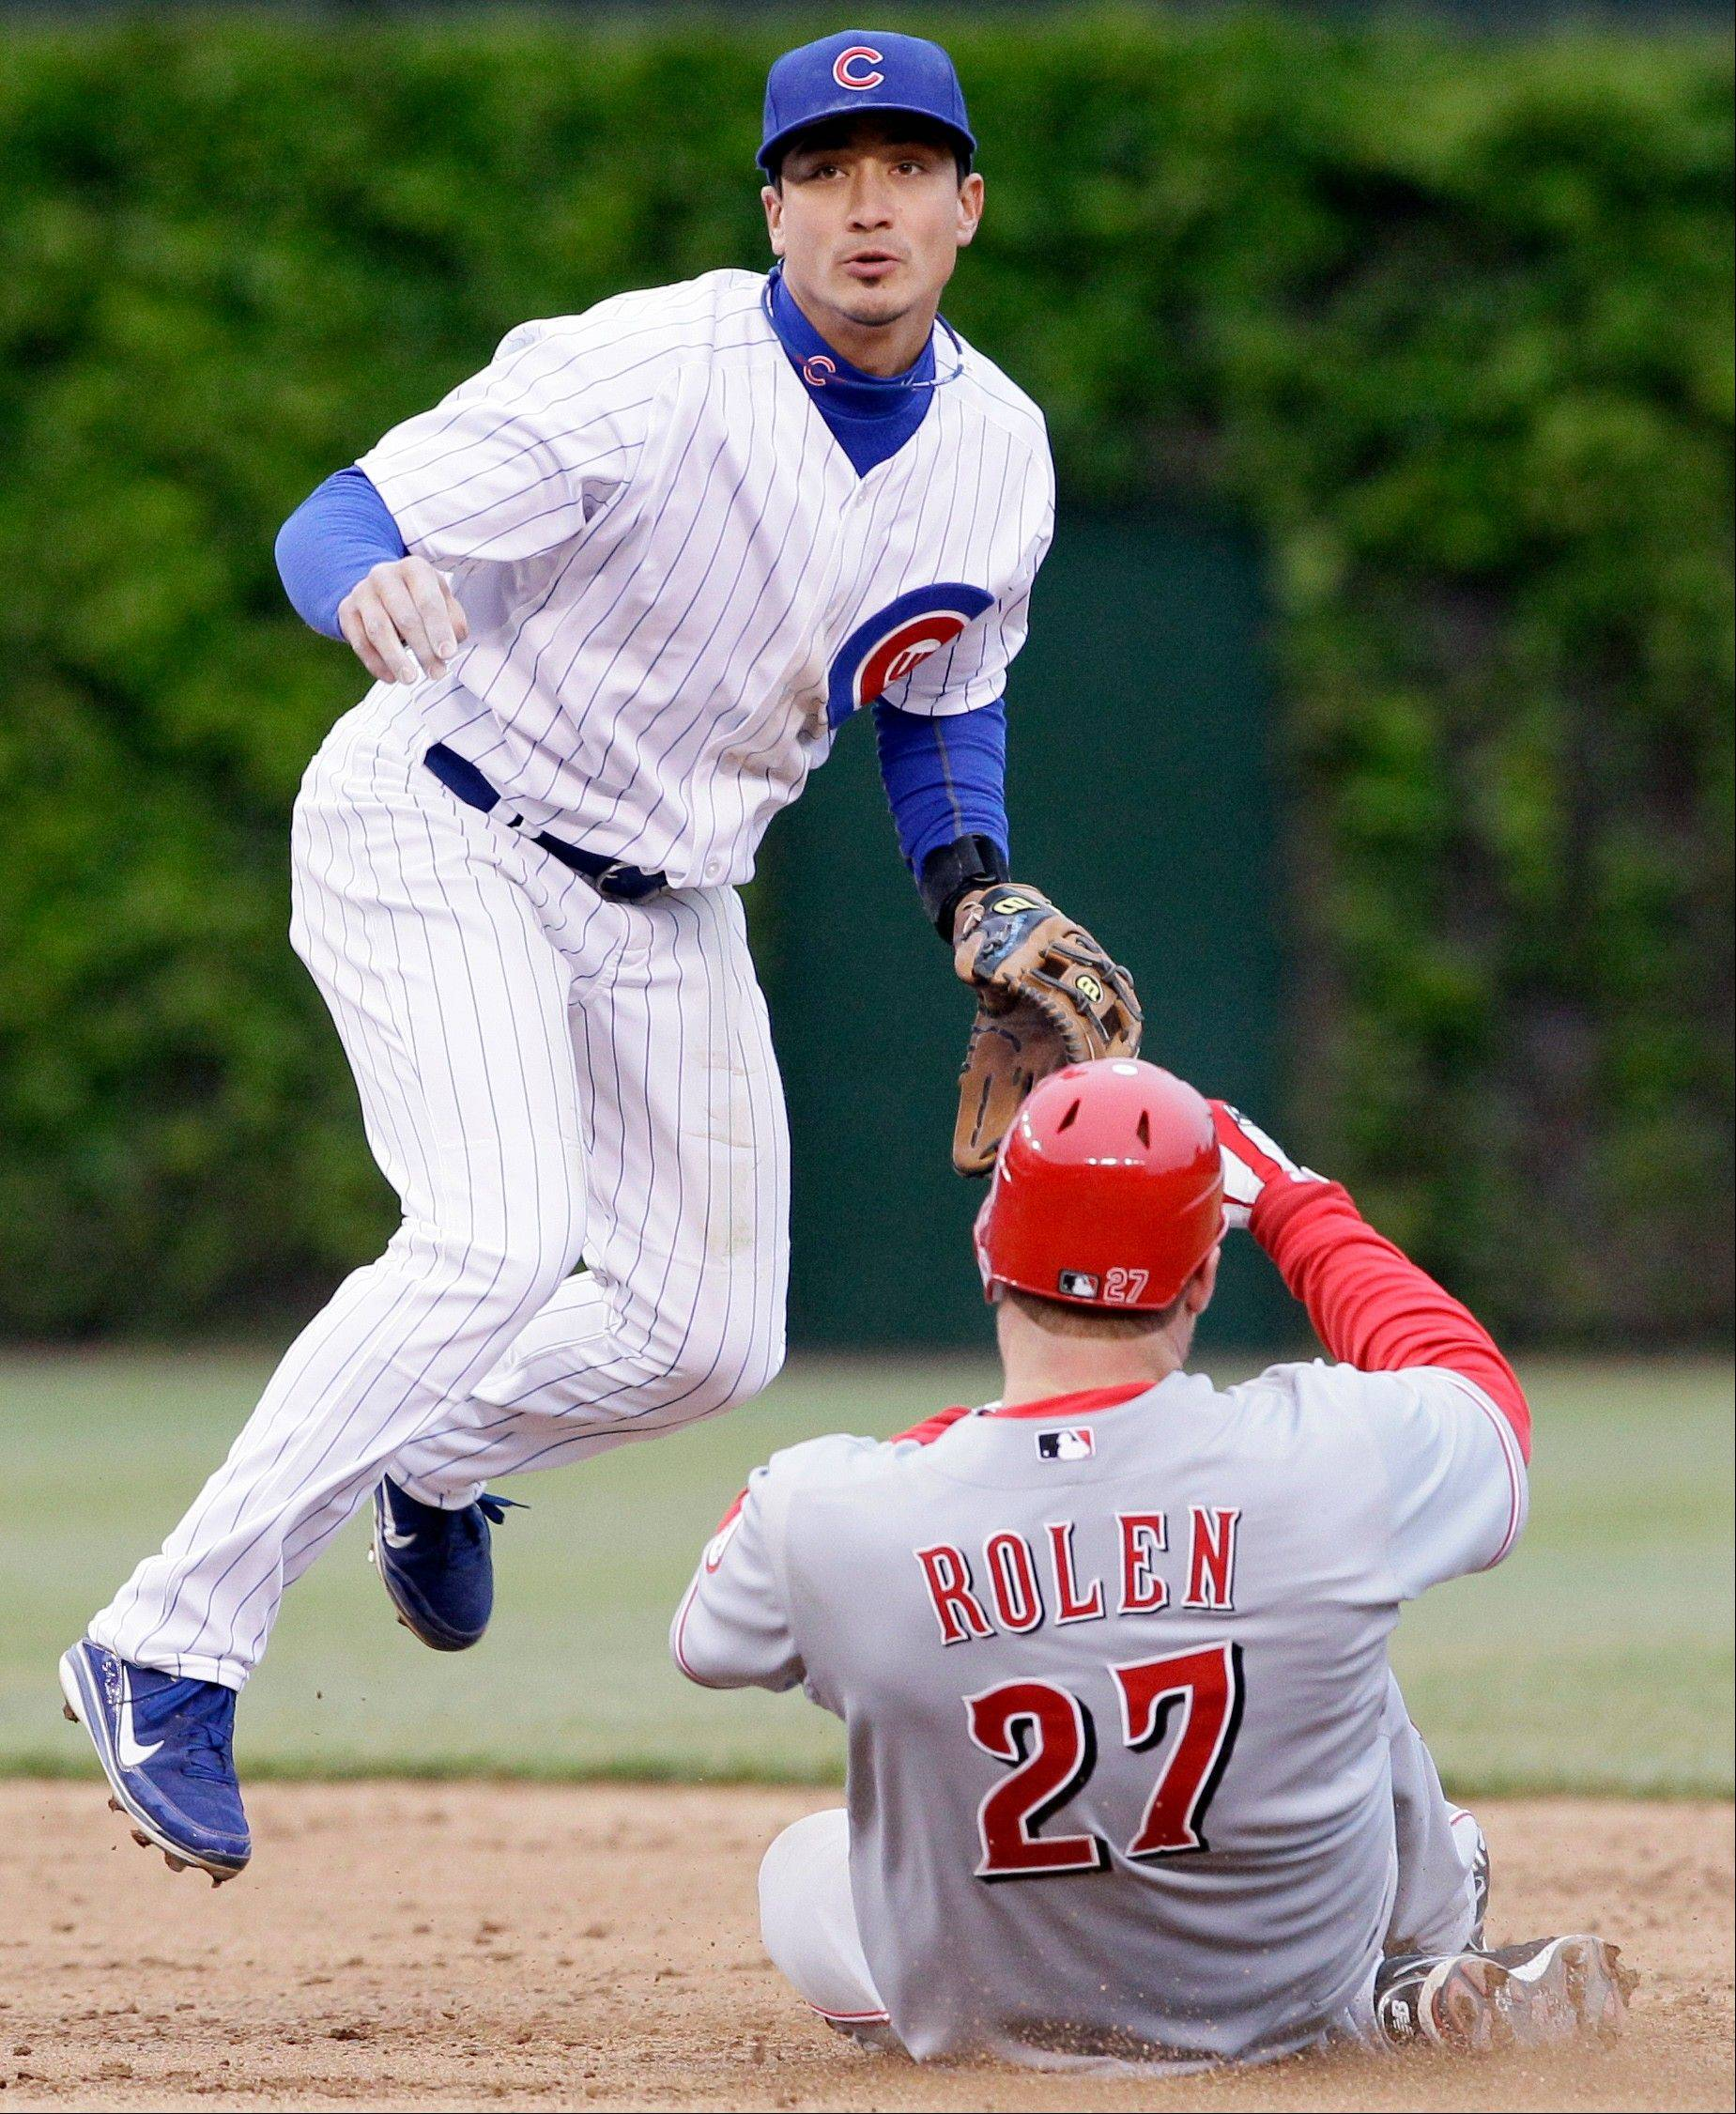 Cubs second baseman Darwin Barney, left, looks to first base after forcing out Cincinnati Reds' Scott Rolen at second base during the ninth inning of a baseball game in Chicago, Friday, April 20, 2012. Cincinnati Reds' Chris Heisey was out at first. The Reds won 9-4.